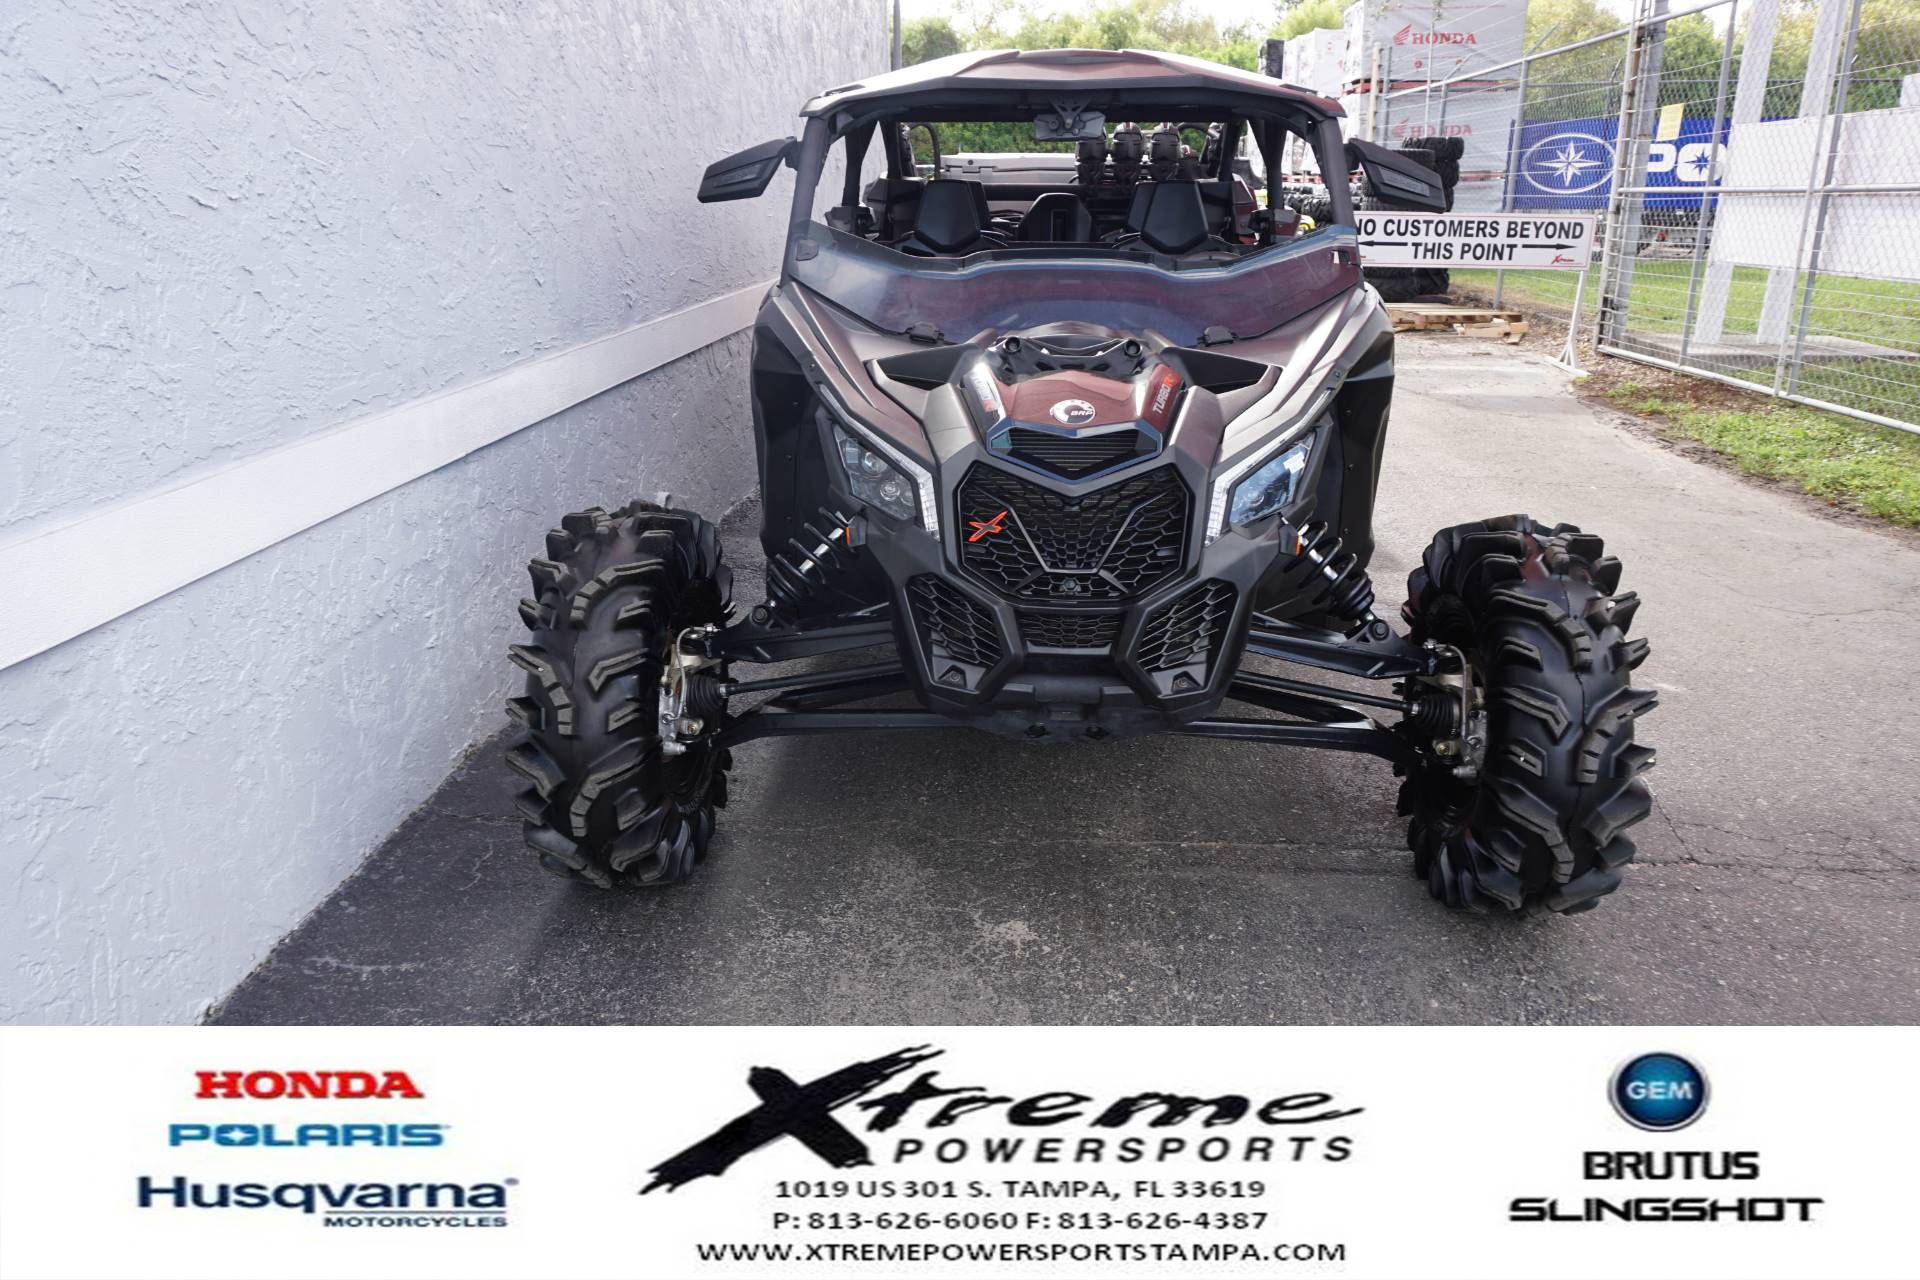 2017 Can-Am MAVERICK X3 TURBO MAX XRS in Tampa, Florida - Photo 5